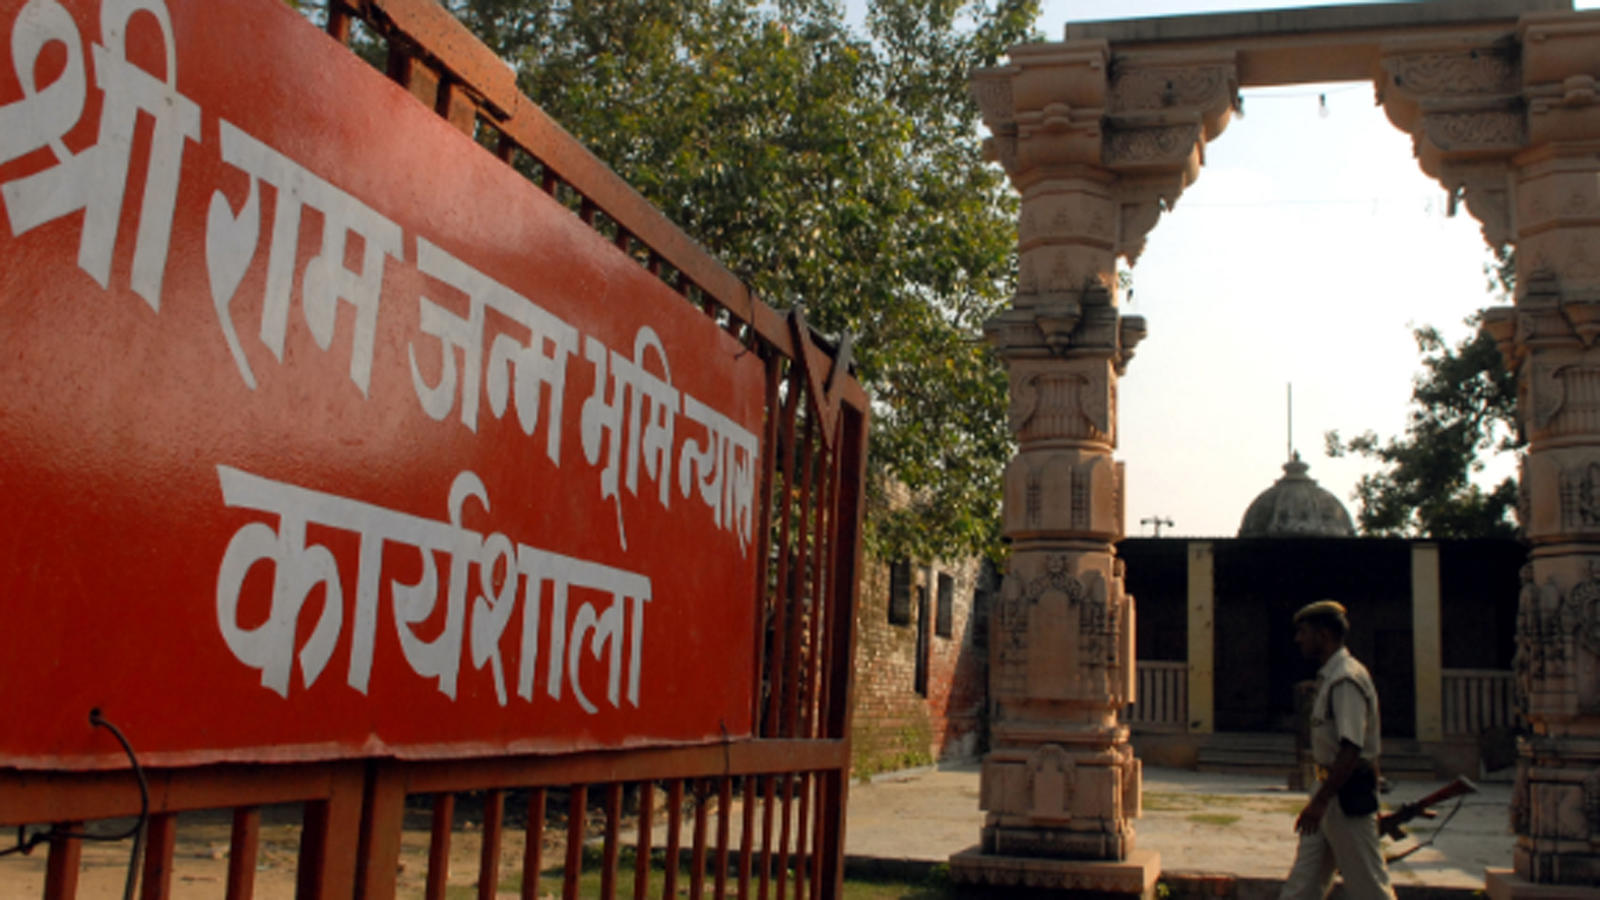 ayodhya-case-muslim-parties-reject-existence-of-ram-temple-say-proof-inconclusive